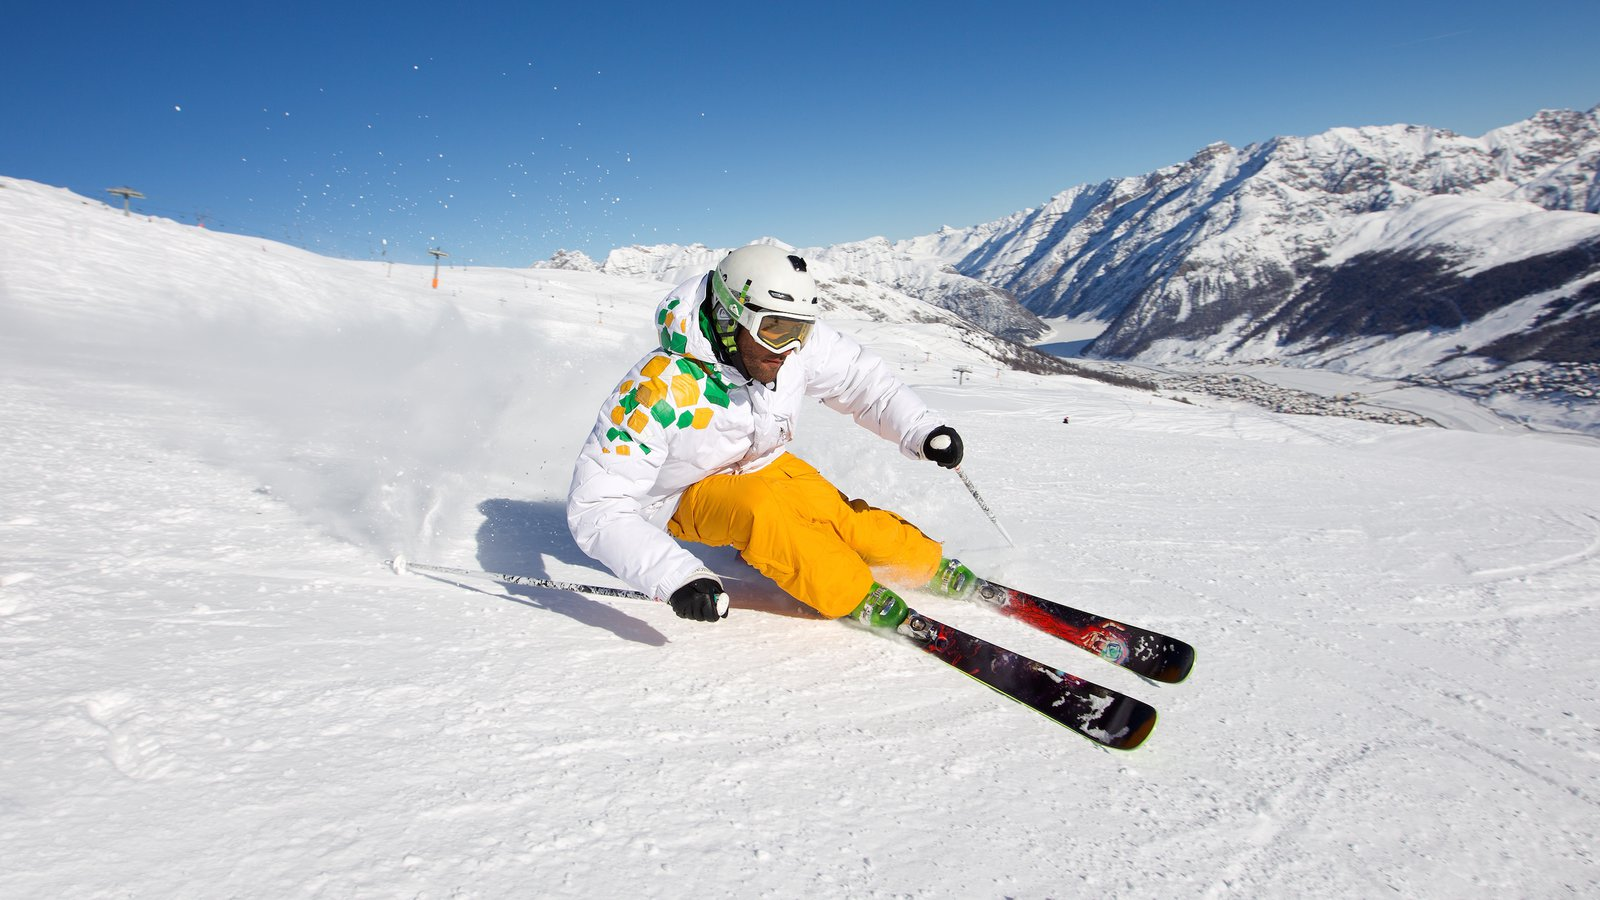 Livigno Ski Area which includes snow, snow skiing and tranquil scenes